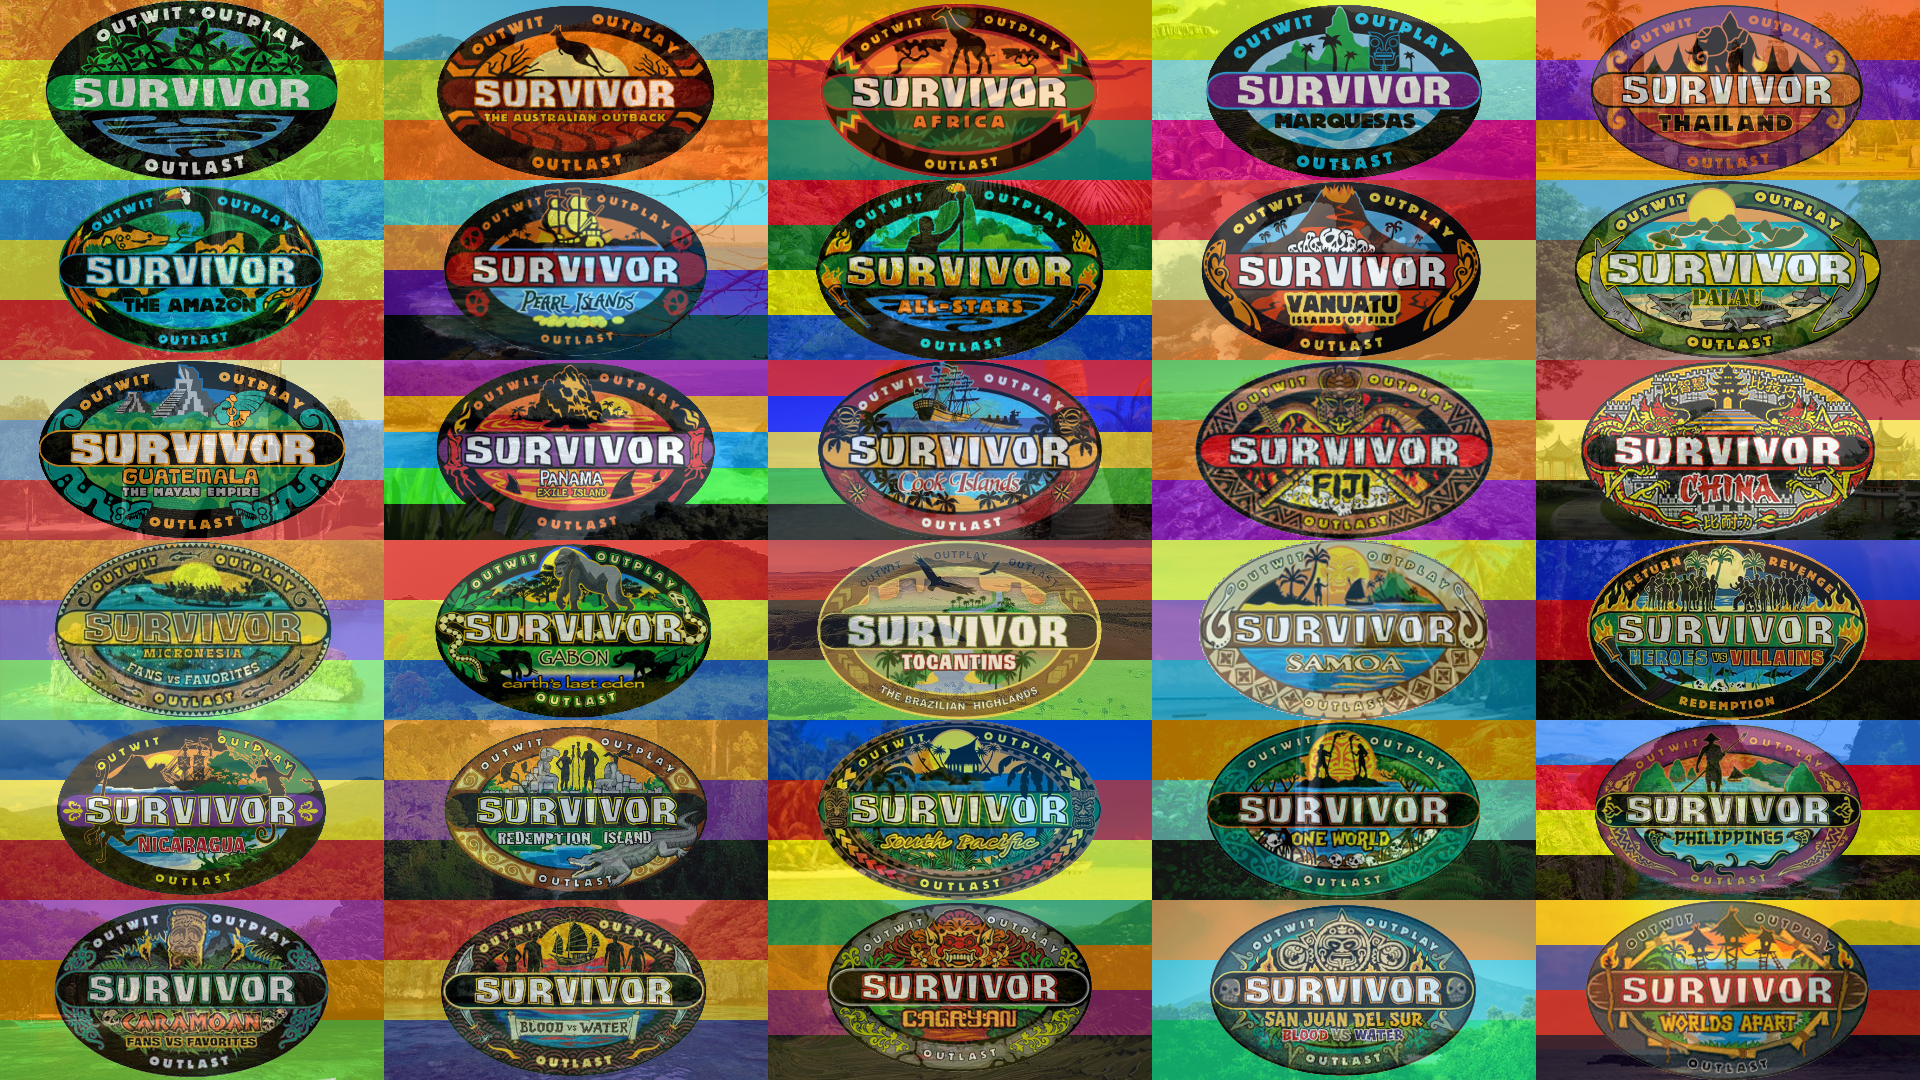 Pictures of Survivor HD, 1920x1080, December 30, 2013